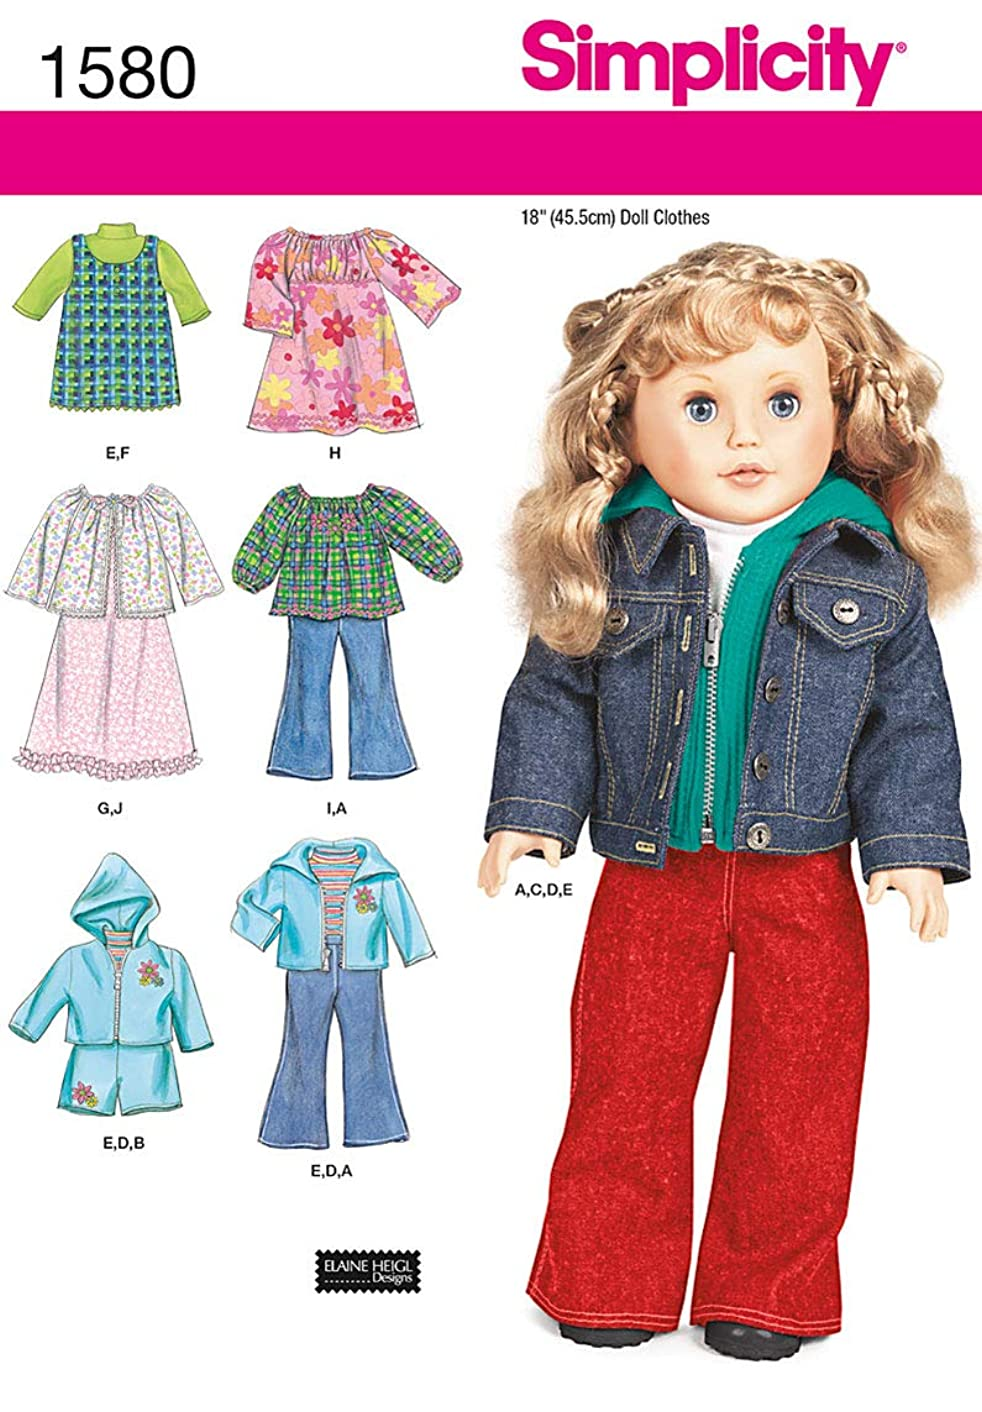 Simplicity Creative Patterns 1580 Doll Clothes